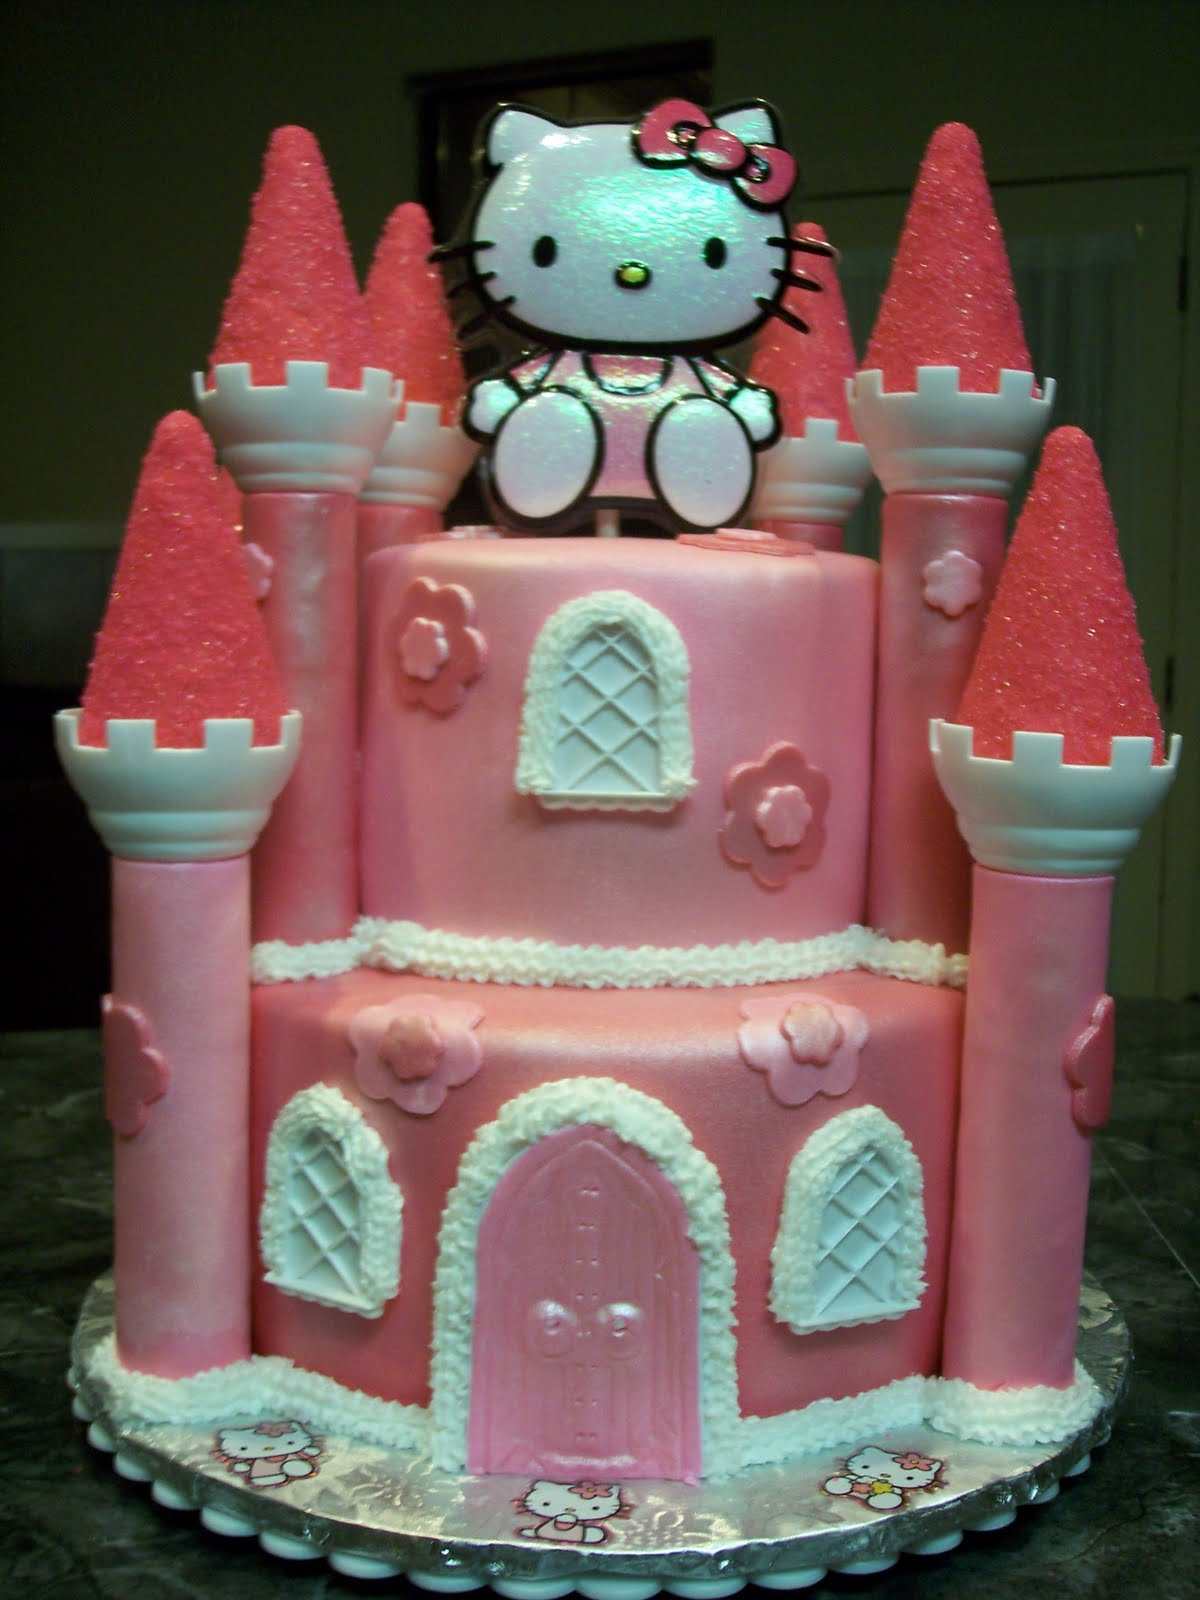 Cake Designs Of Hello Kitty : MyMoniCakes: Hello Kitty Castle Cake